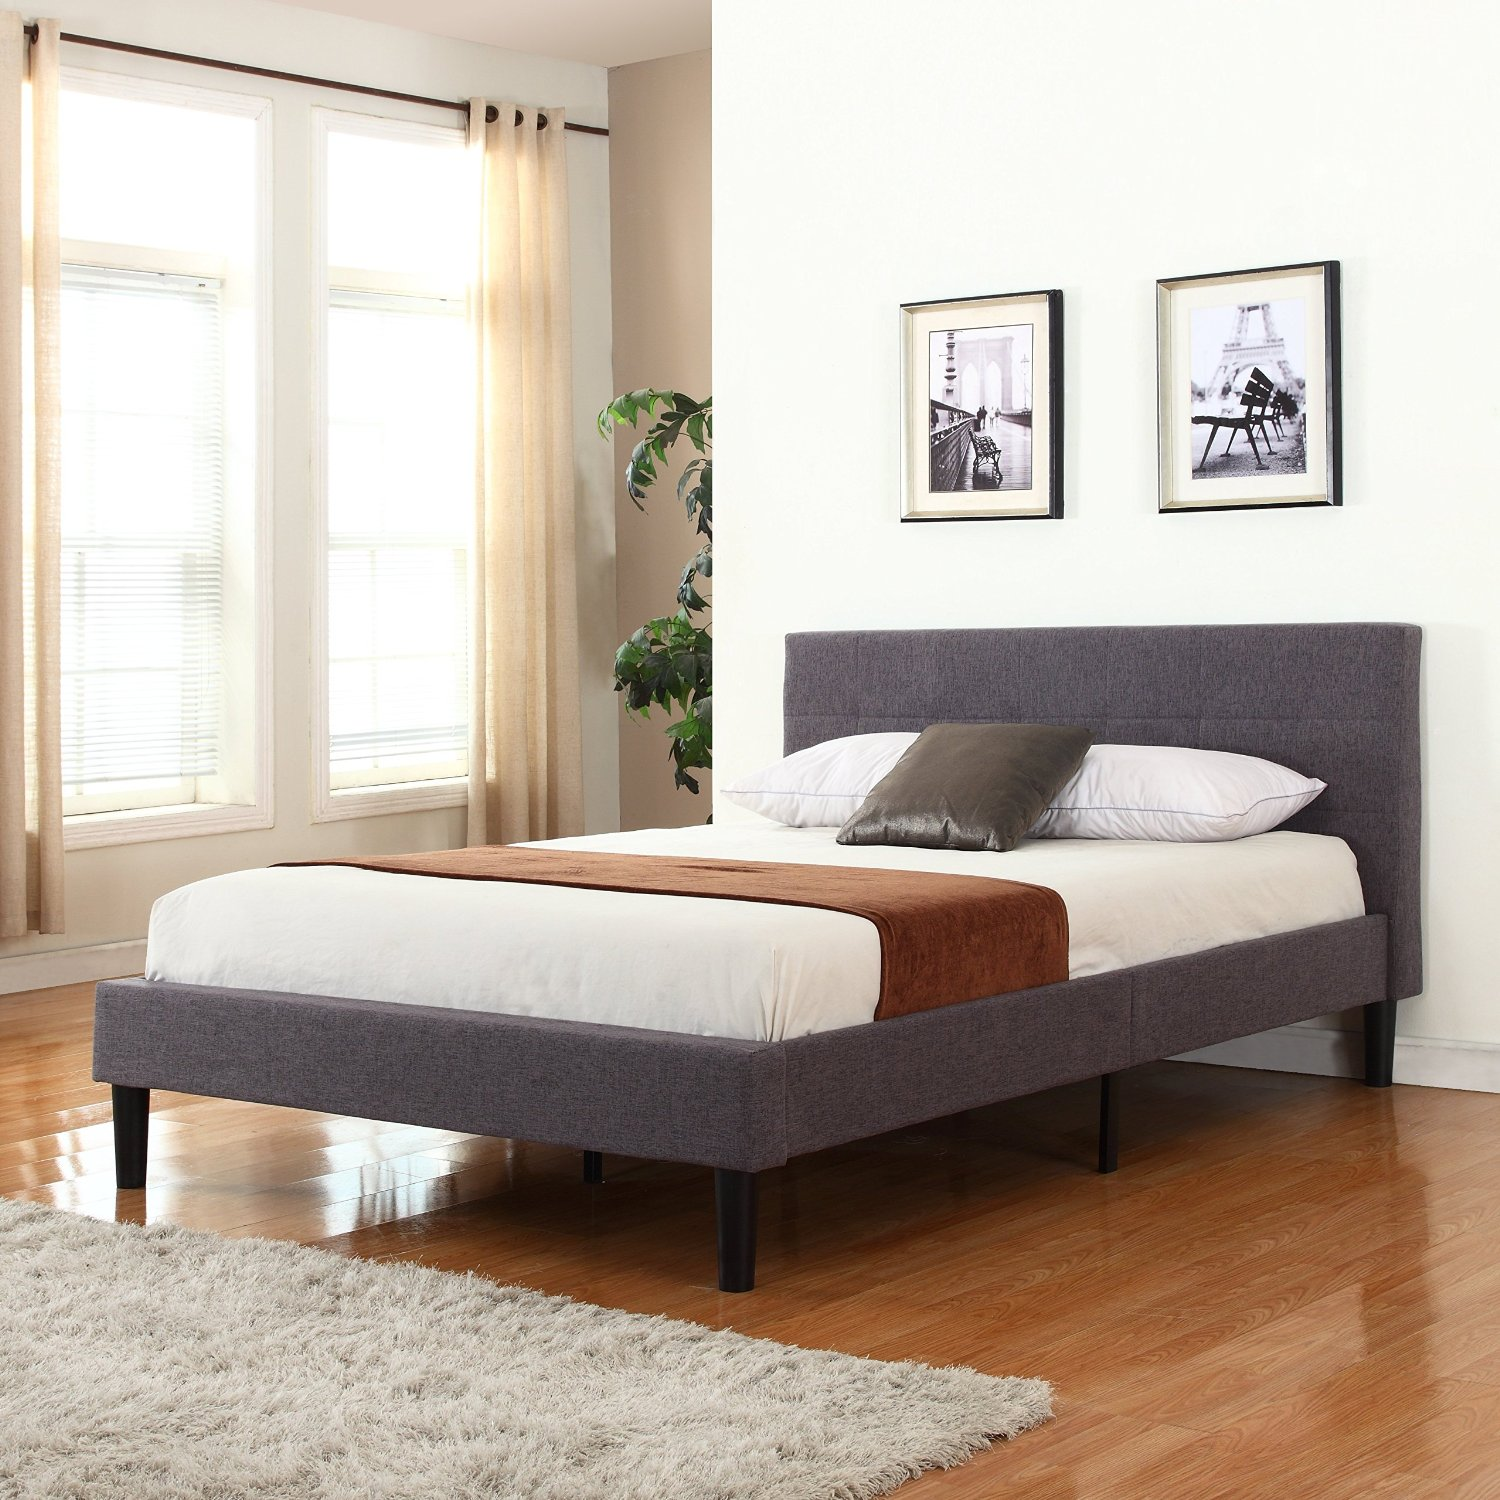 Cheap King Tufted Bed Frame, find King Tufted Bed Frame deals on ...